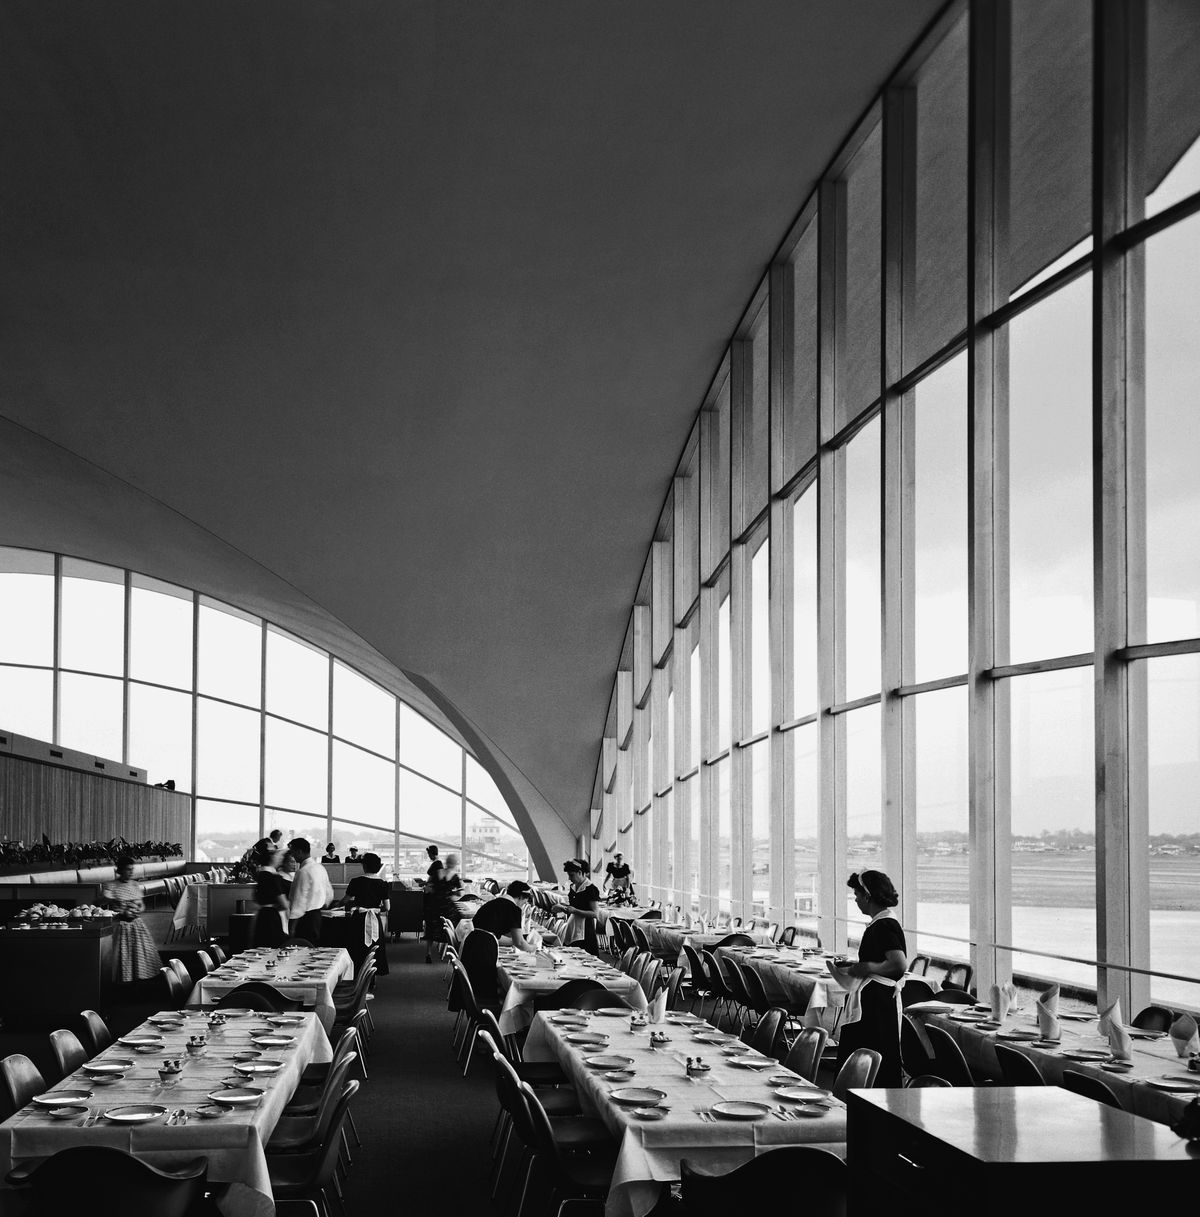 The inside of an airport terminal which features large windows and a curbed ceiling.